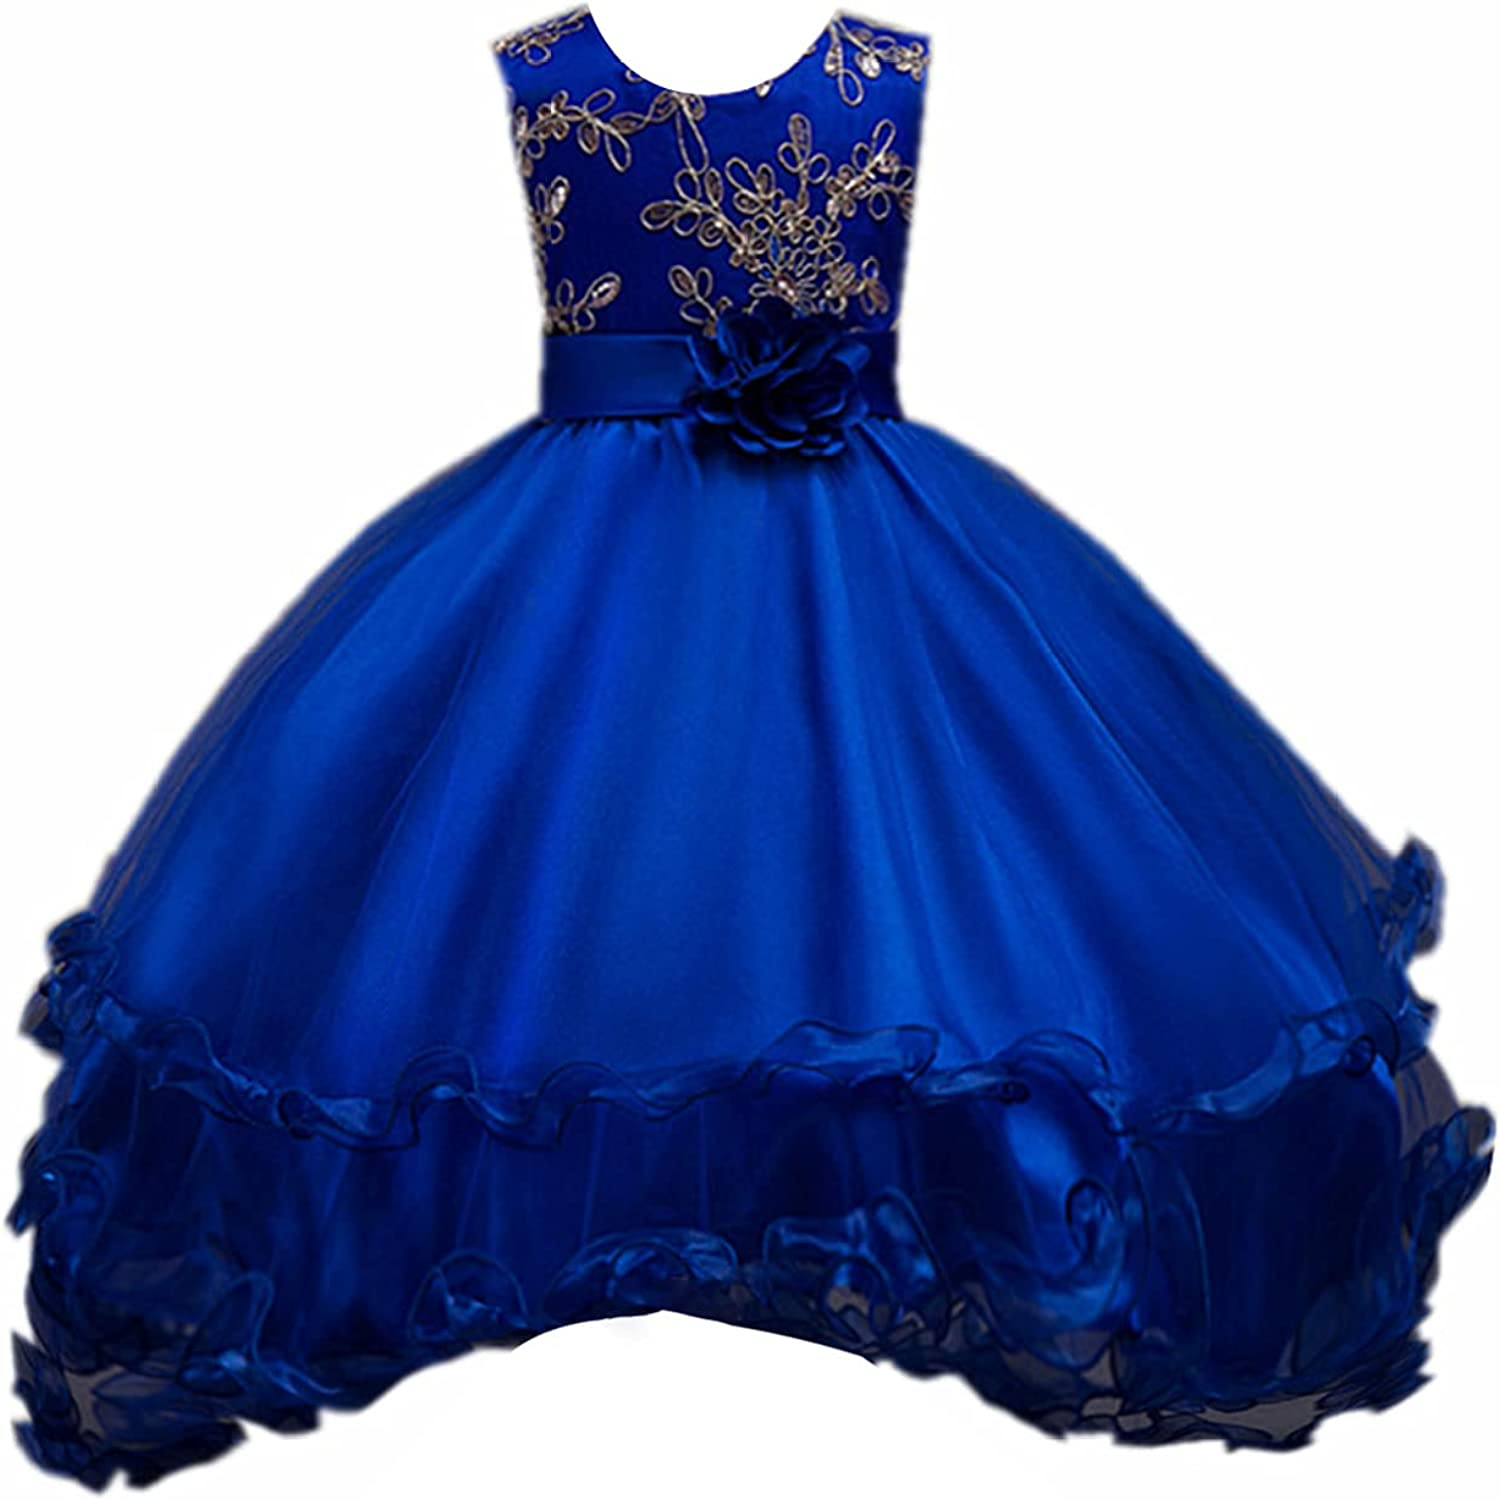 YONGHS Kids Girls Embroidery Pageant Princess Dress Sleeveless High Low Flower Girl Dress for Special Occasion